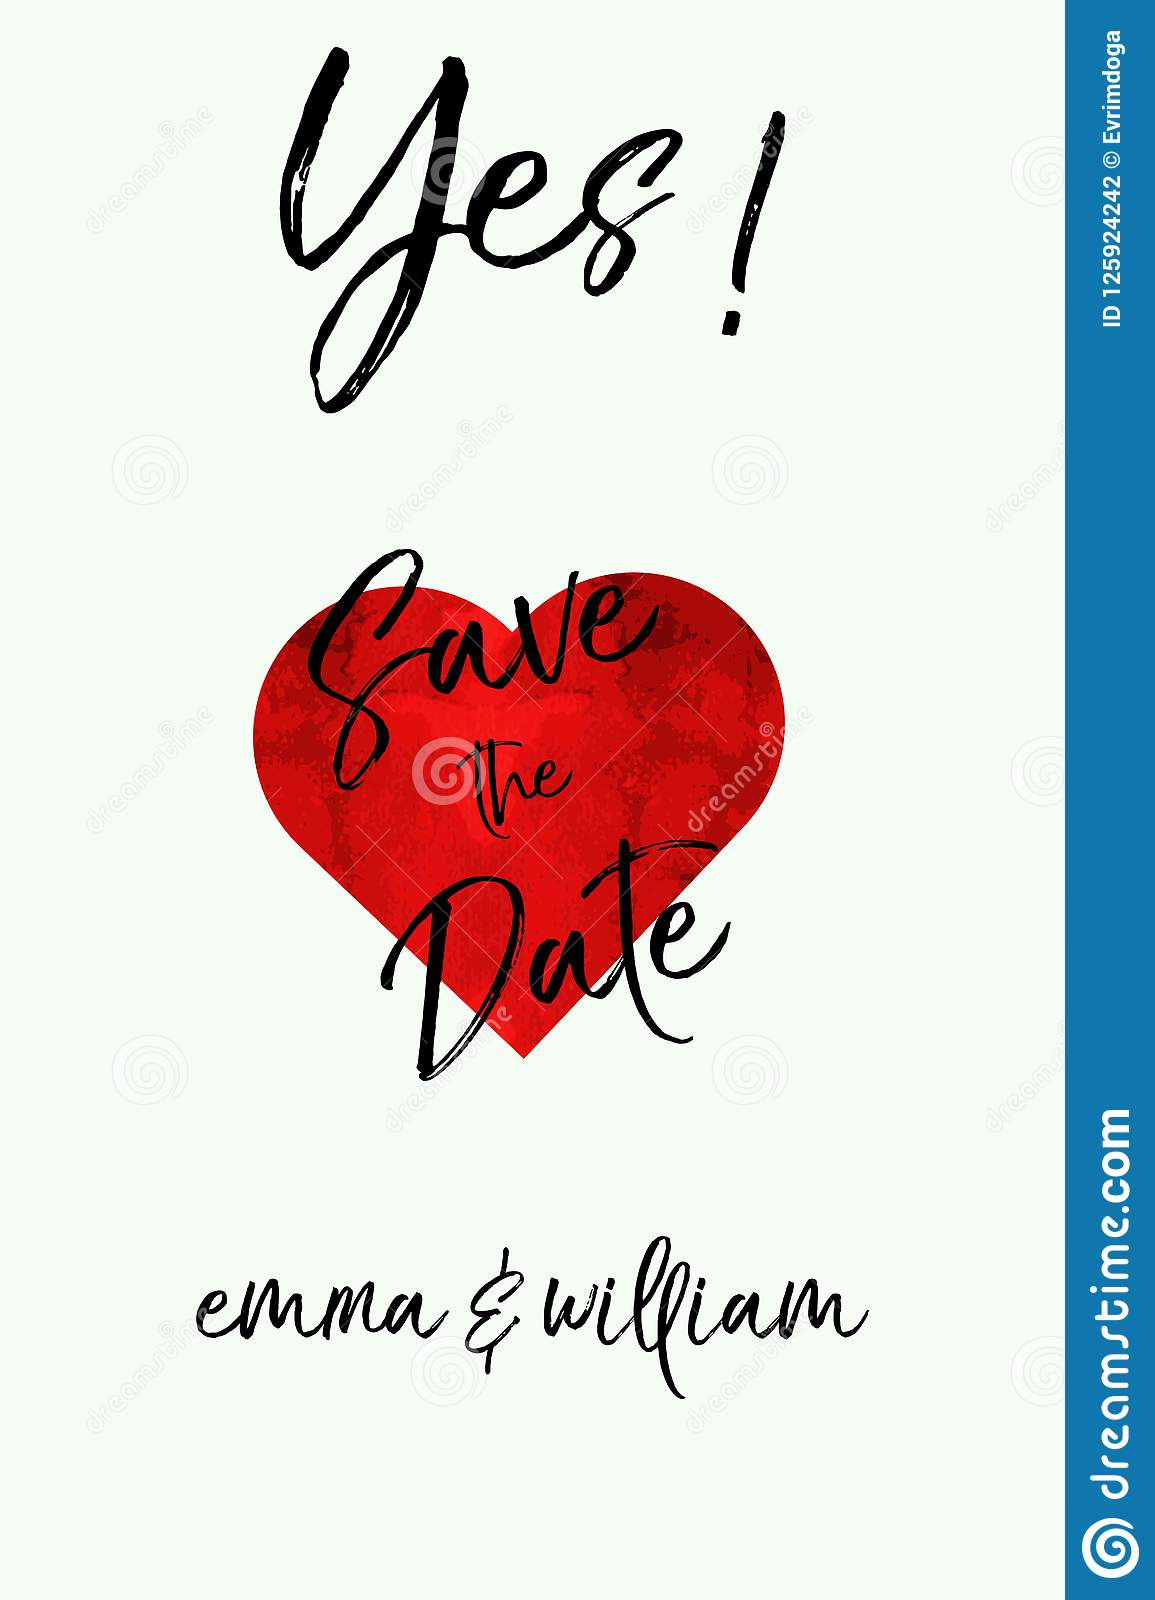 Save The Date, Hand-drawn Labels For Postcards Design Wedding ...